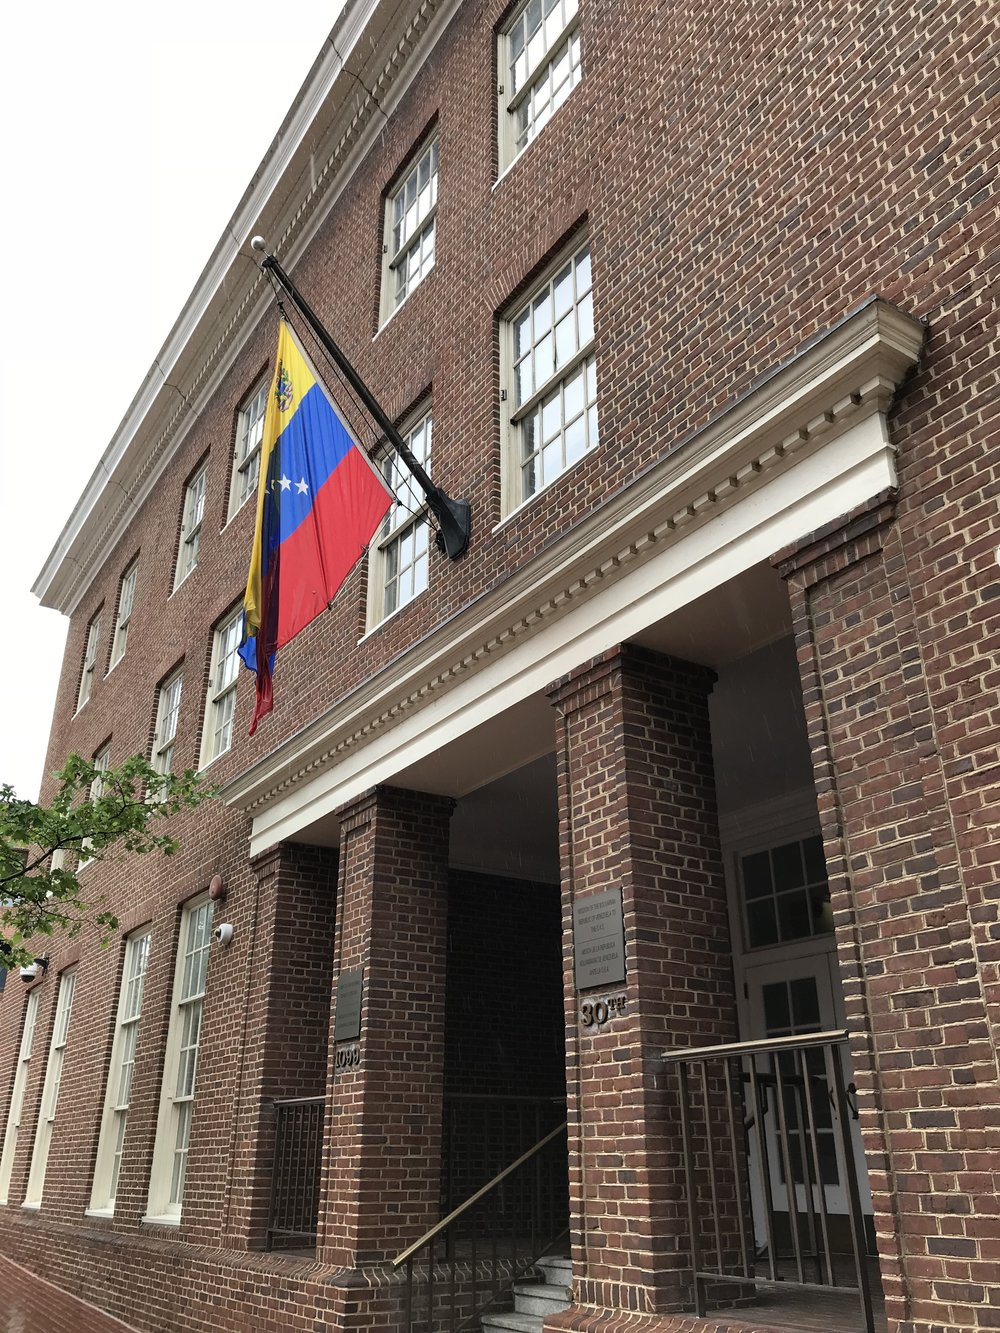 The Embassy of Venezuela.